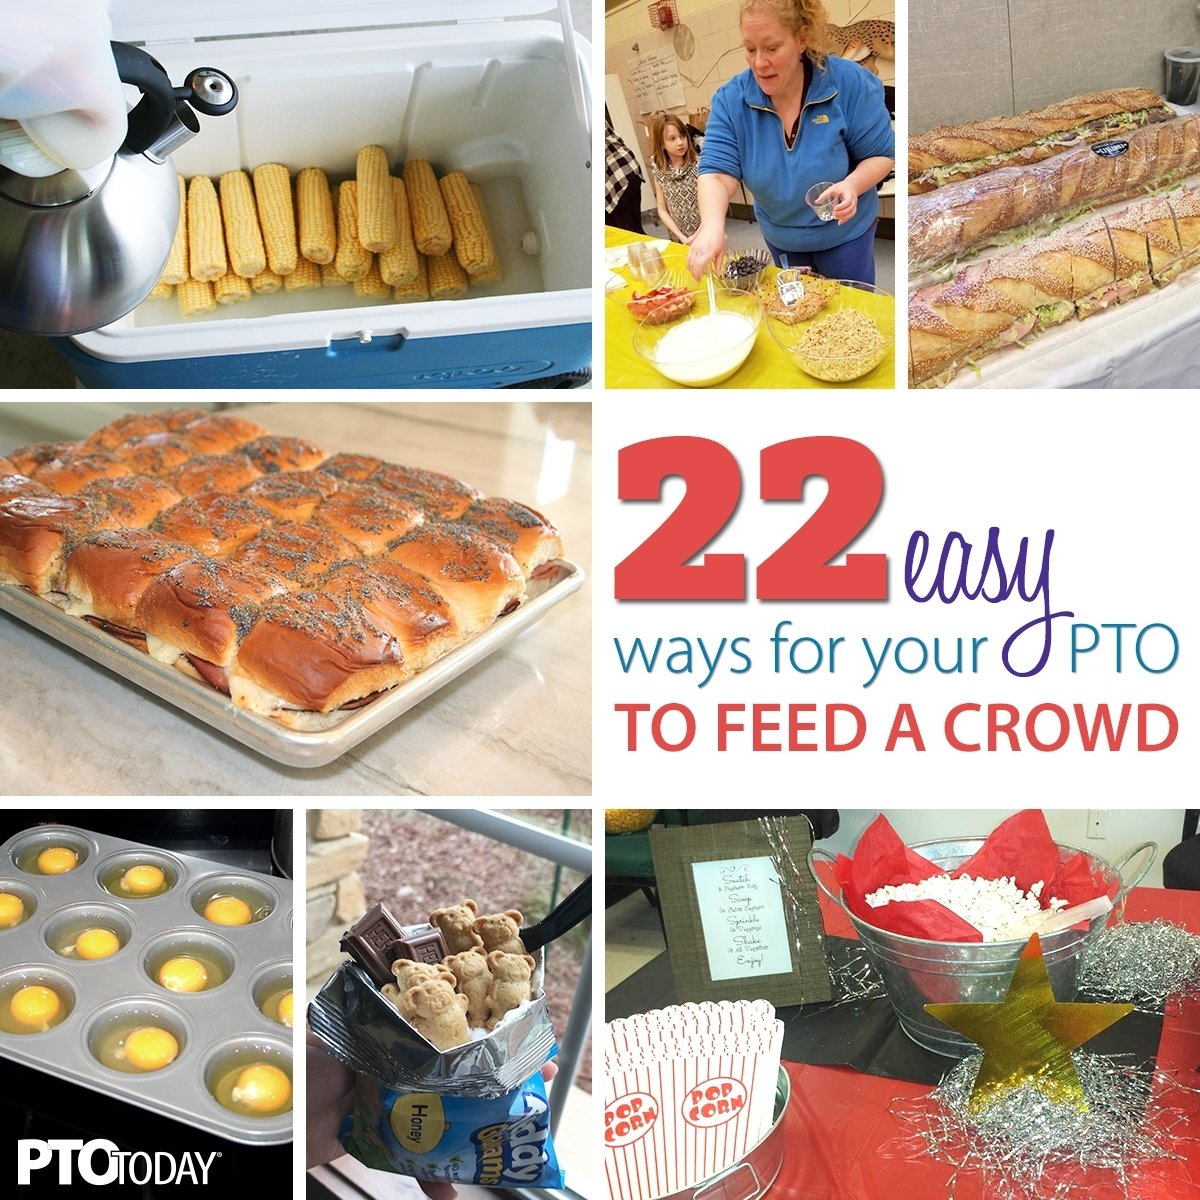 10 Most Popular Food Ideas For Large Parties 22 easy meal ideas for large groups pto today 4 2020